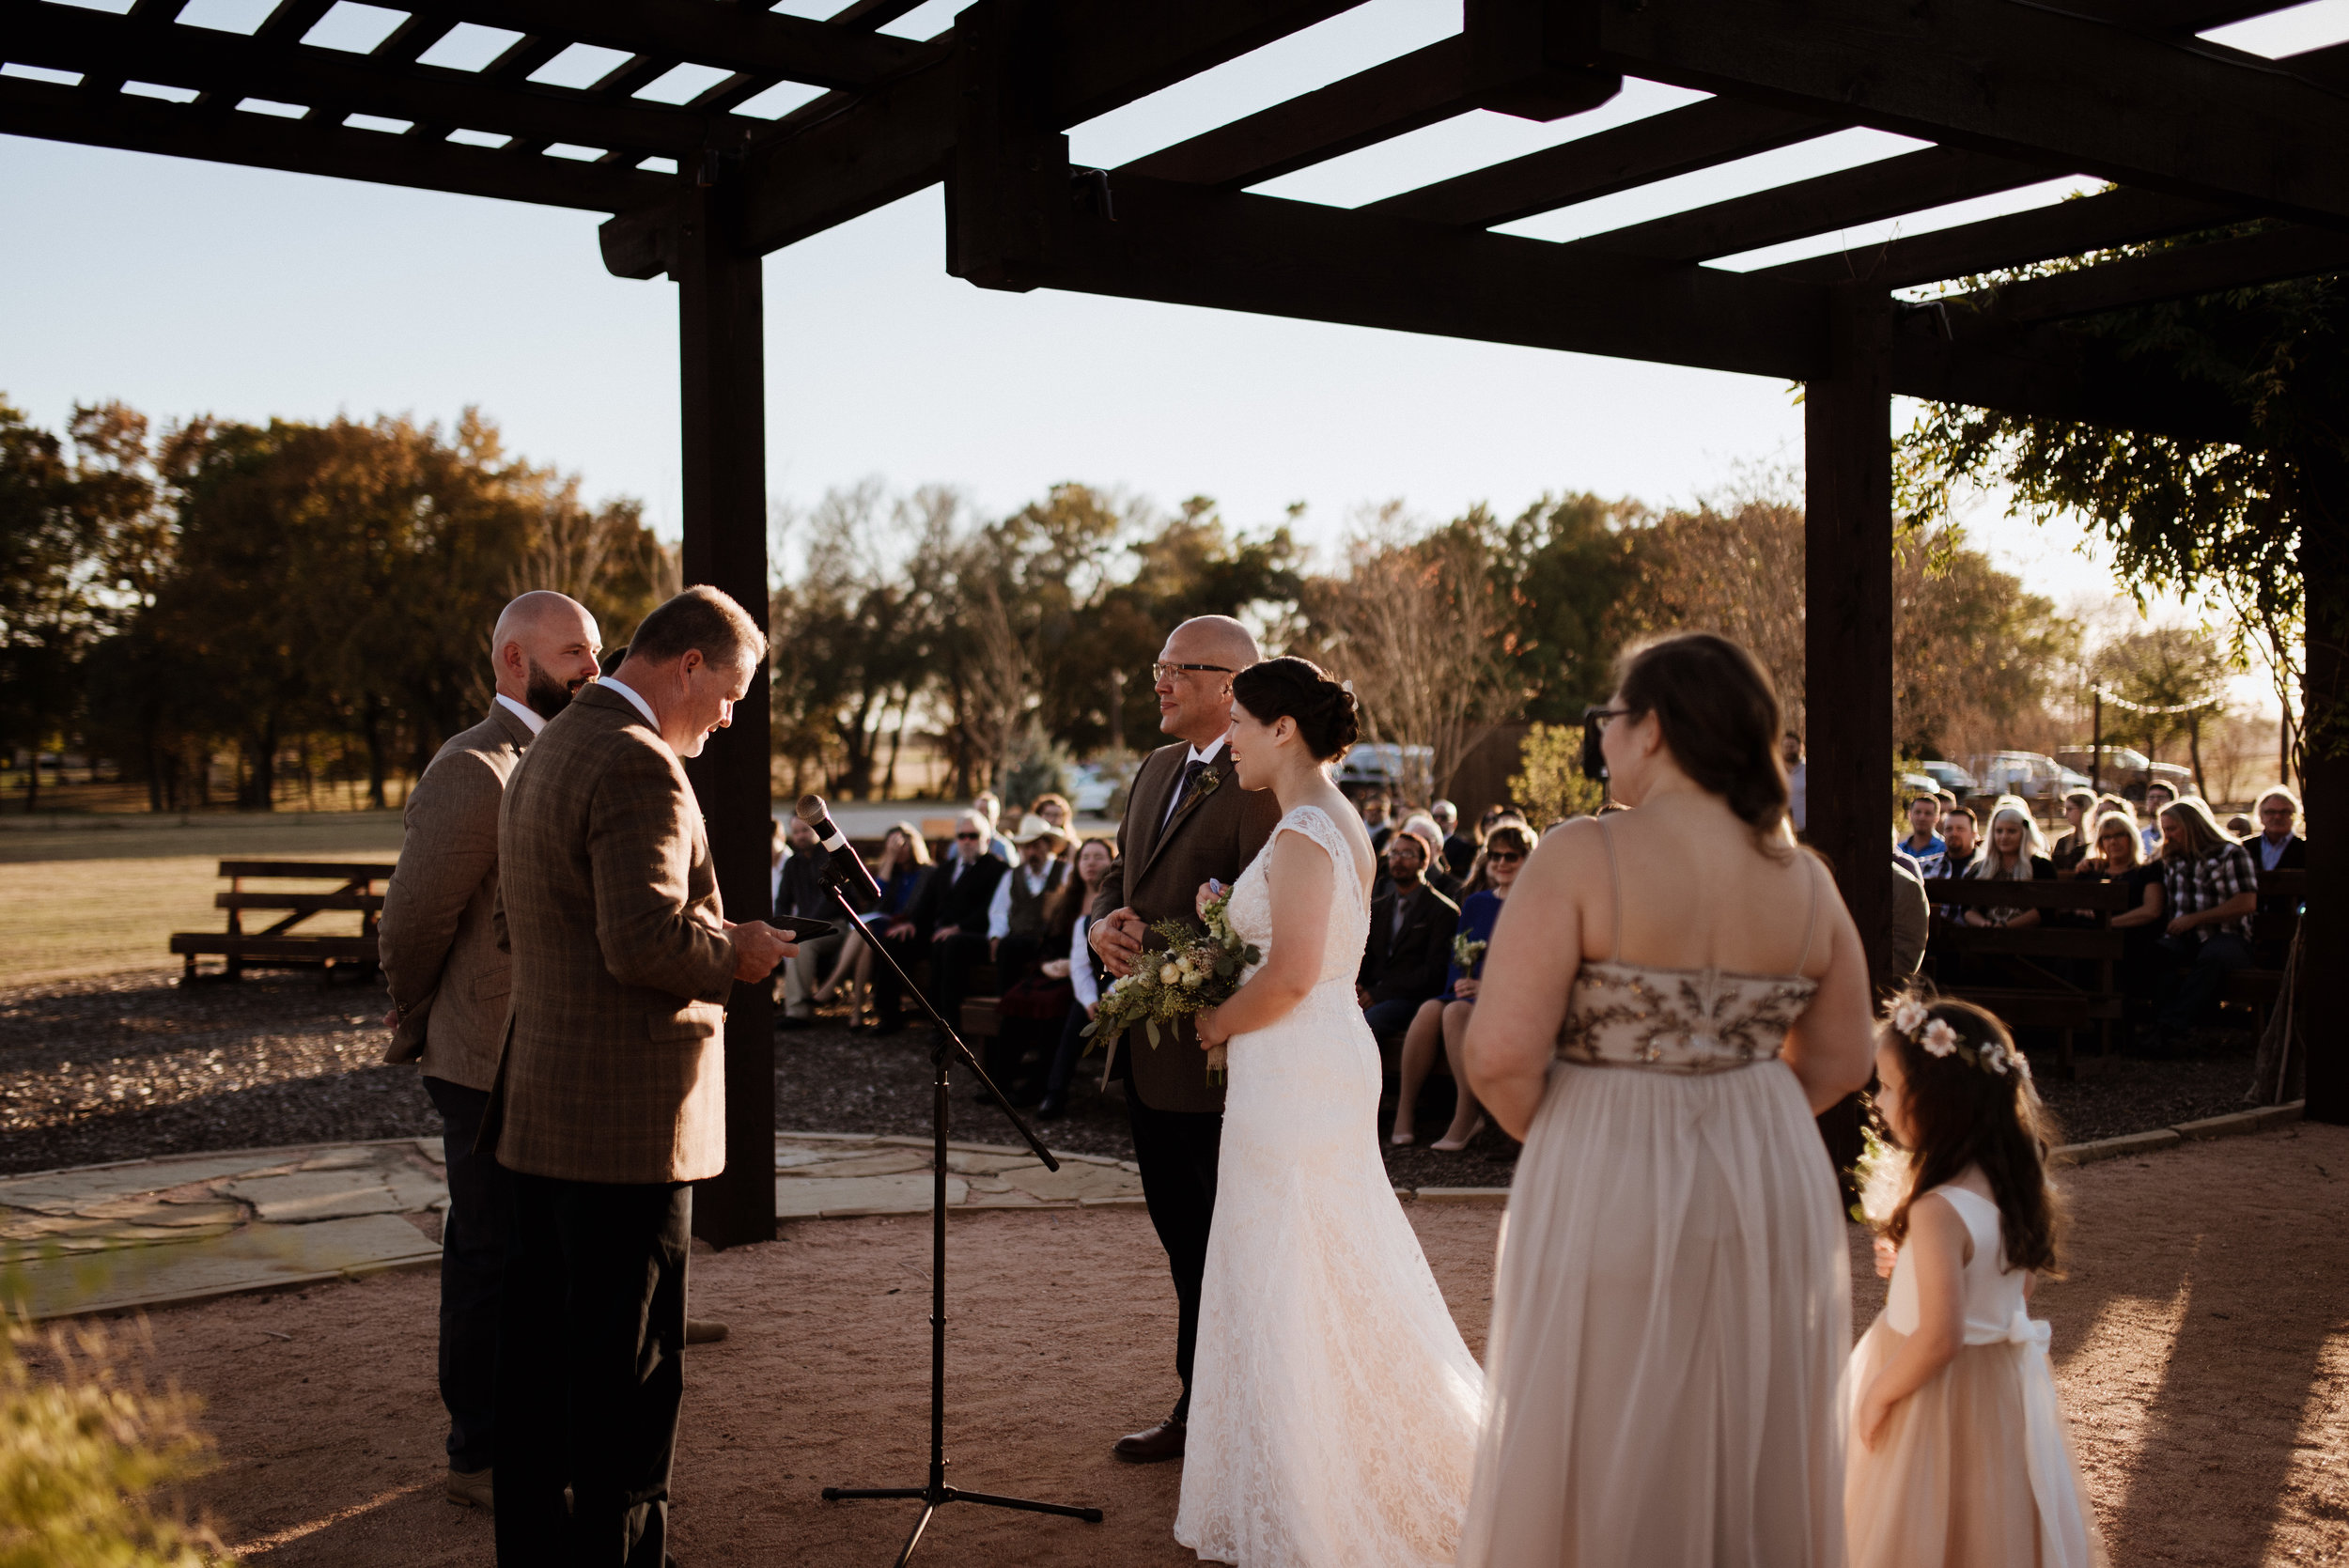 Upshaw Wedding-408.jpg